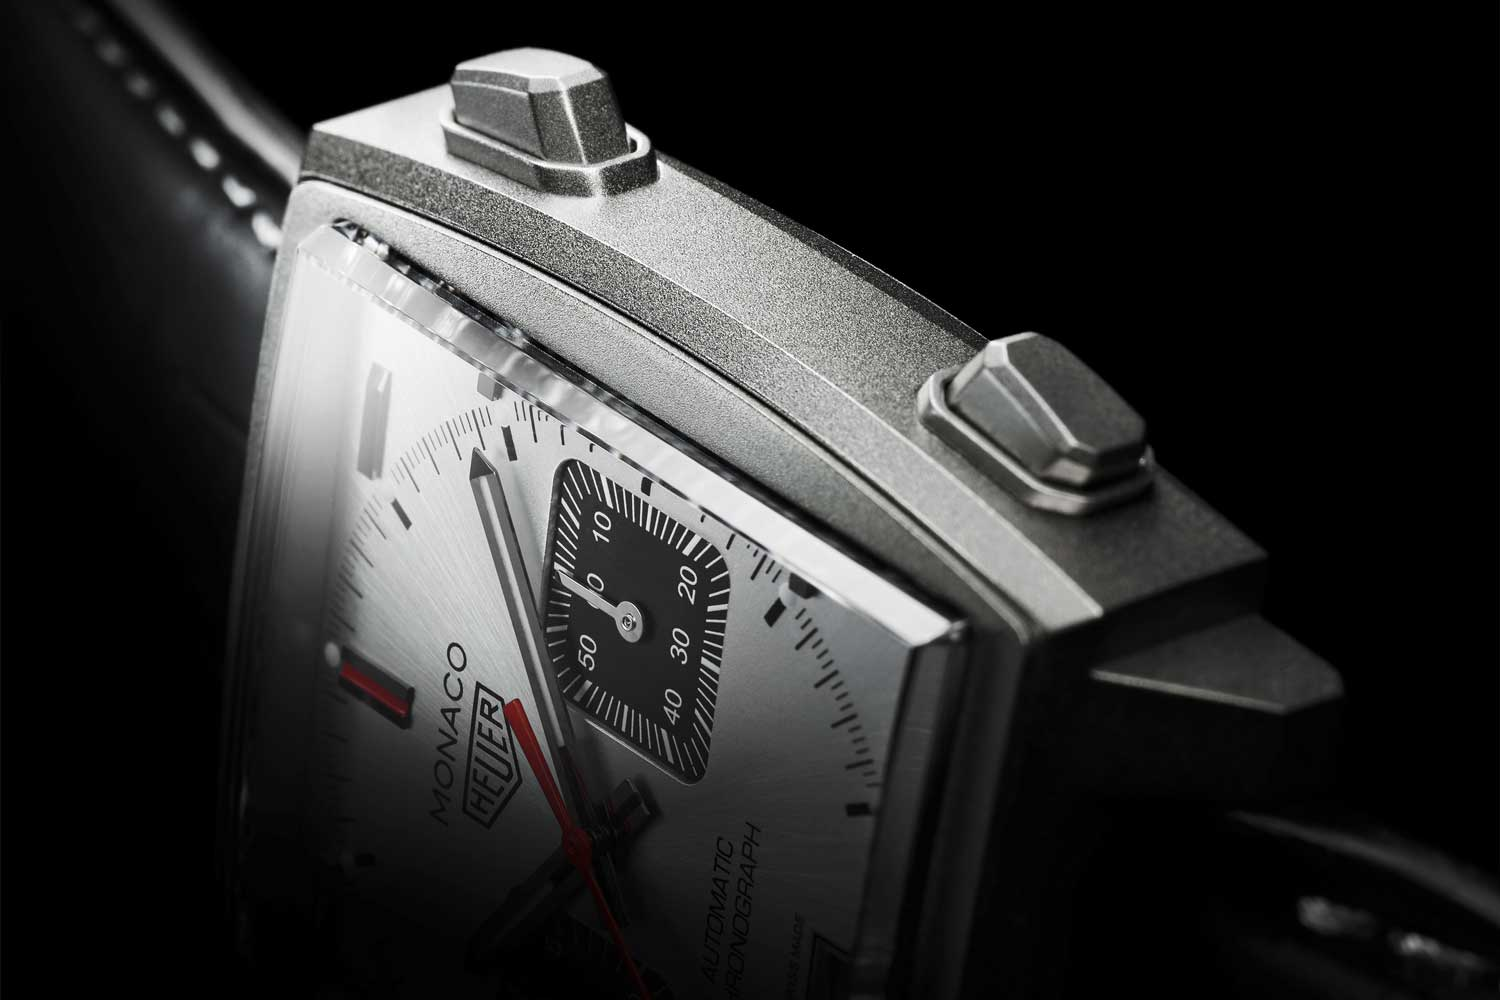 Just like the original model, the Monaco Titan Special Edition has its push buttons placed on the right and the crown on the left-hand side of the case